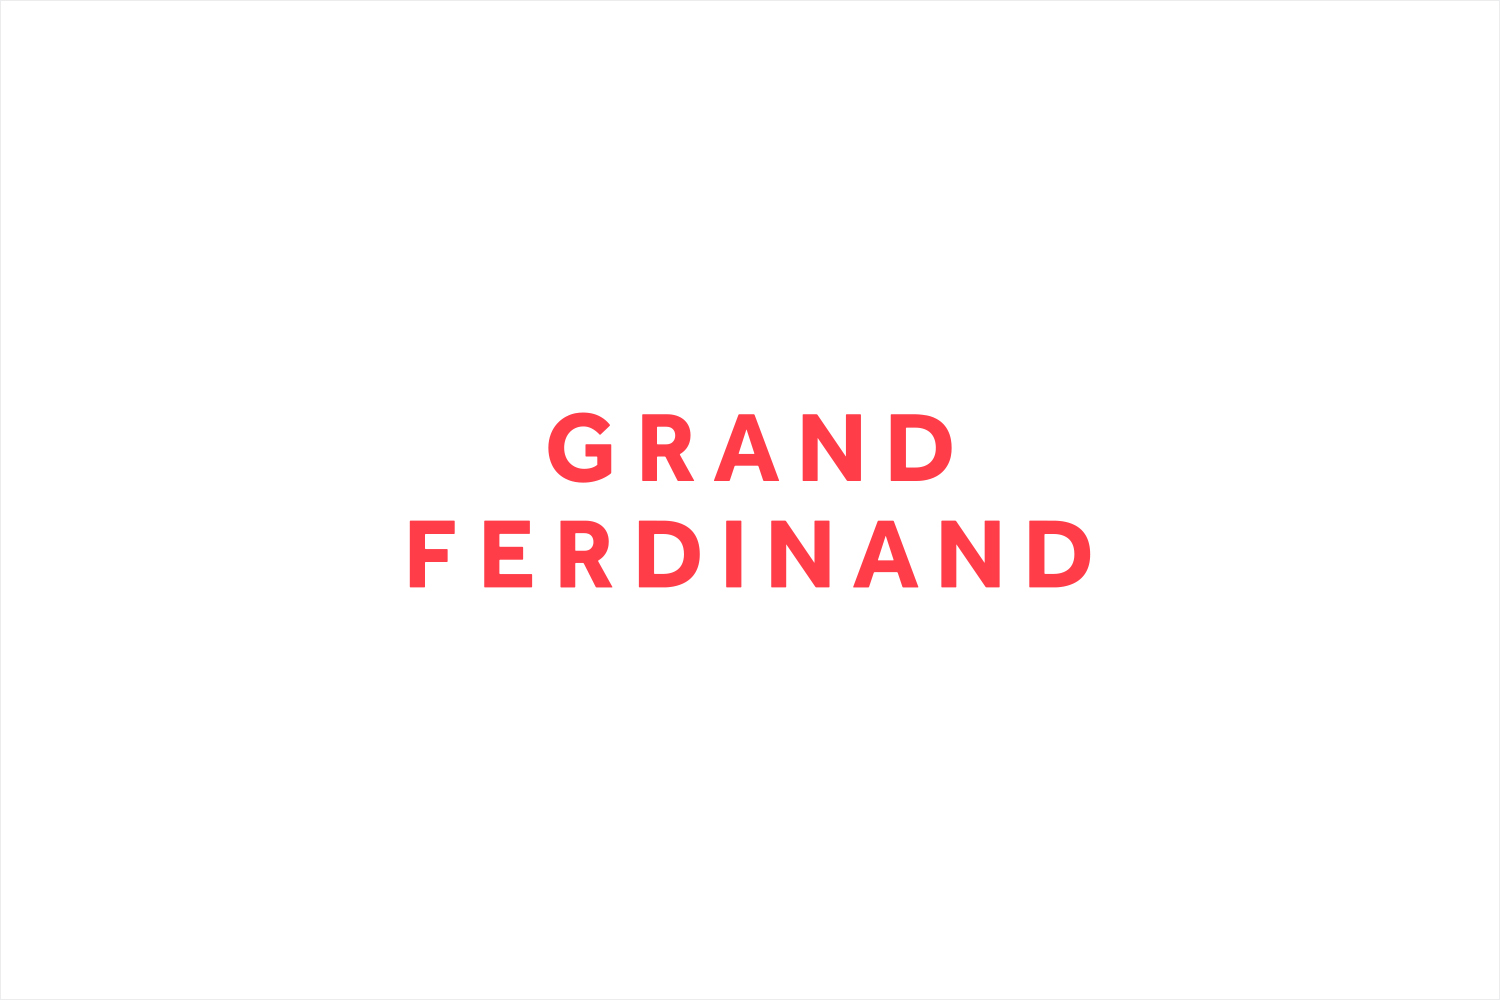 Sans-serif logotype for Vienna's Grand Ferdinand hotel by Austrian graphic design studio Moodley